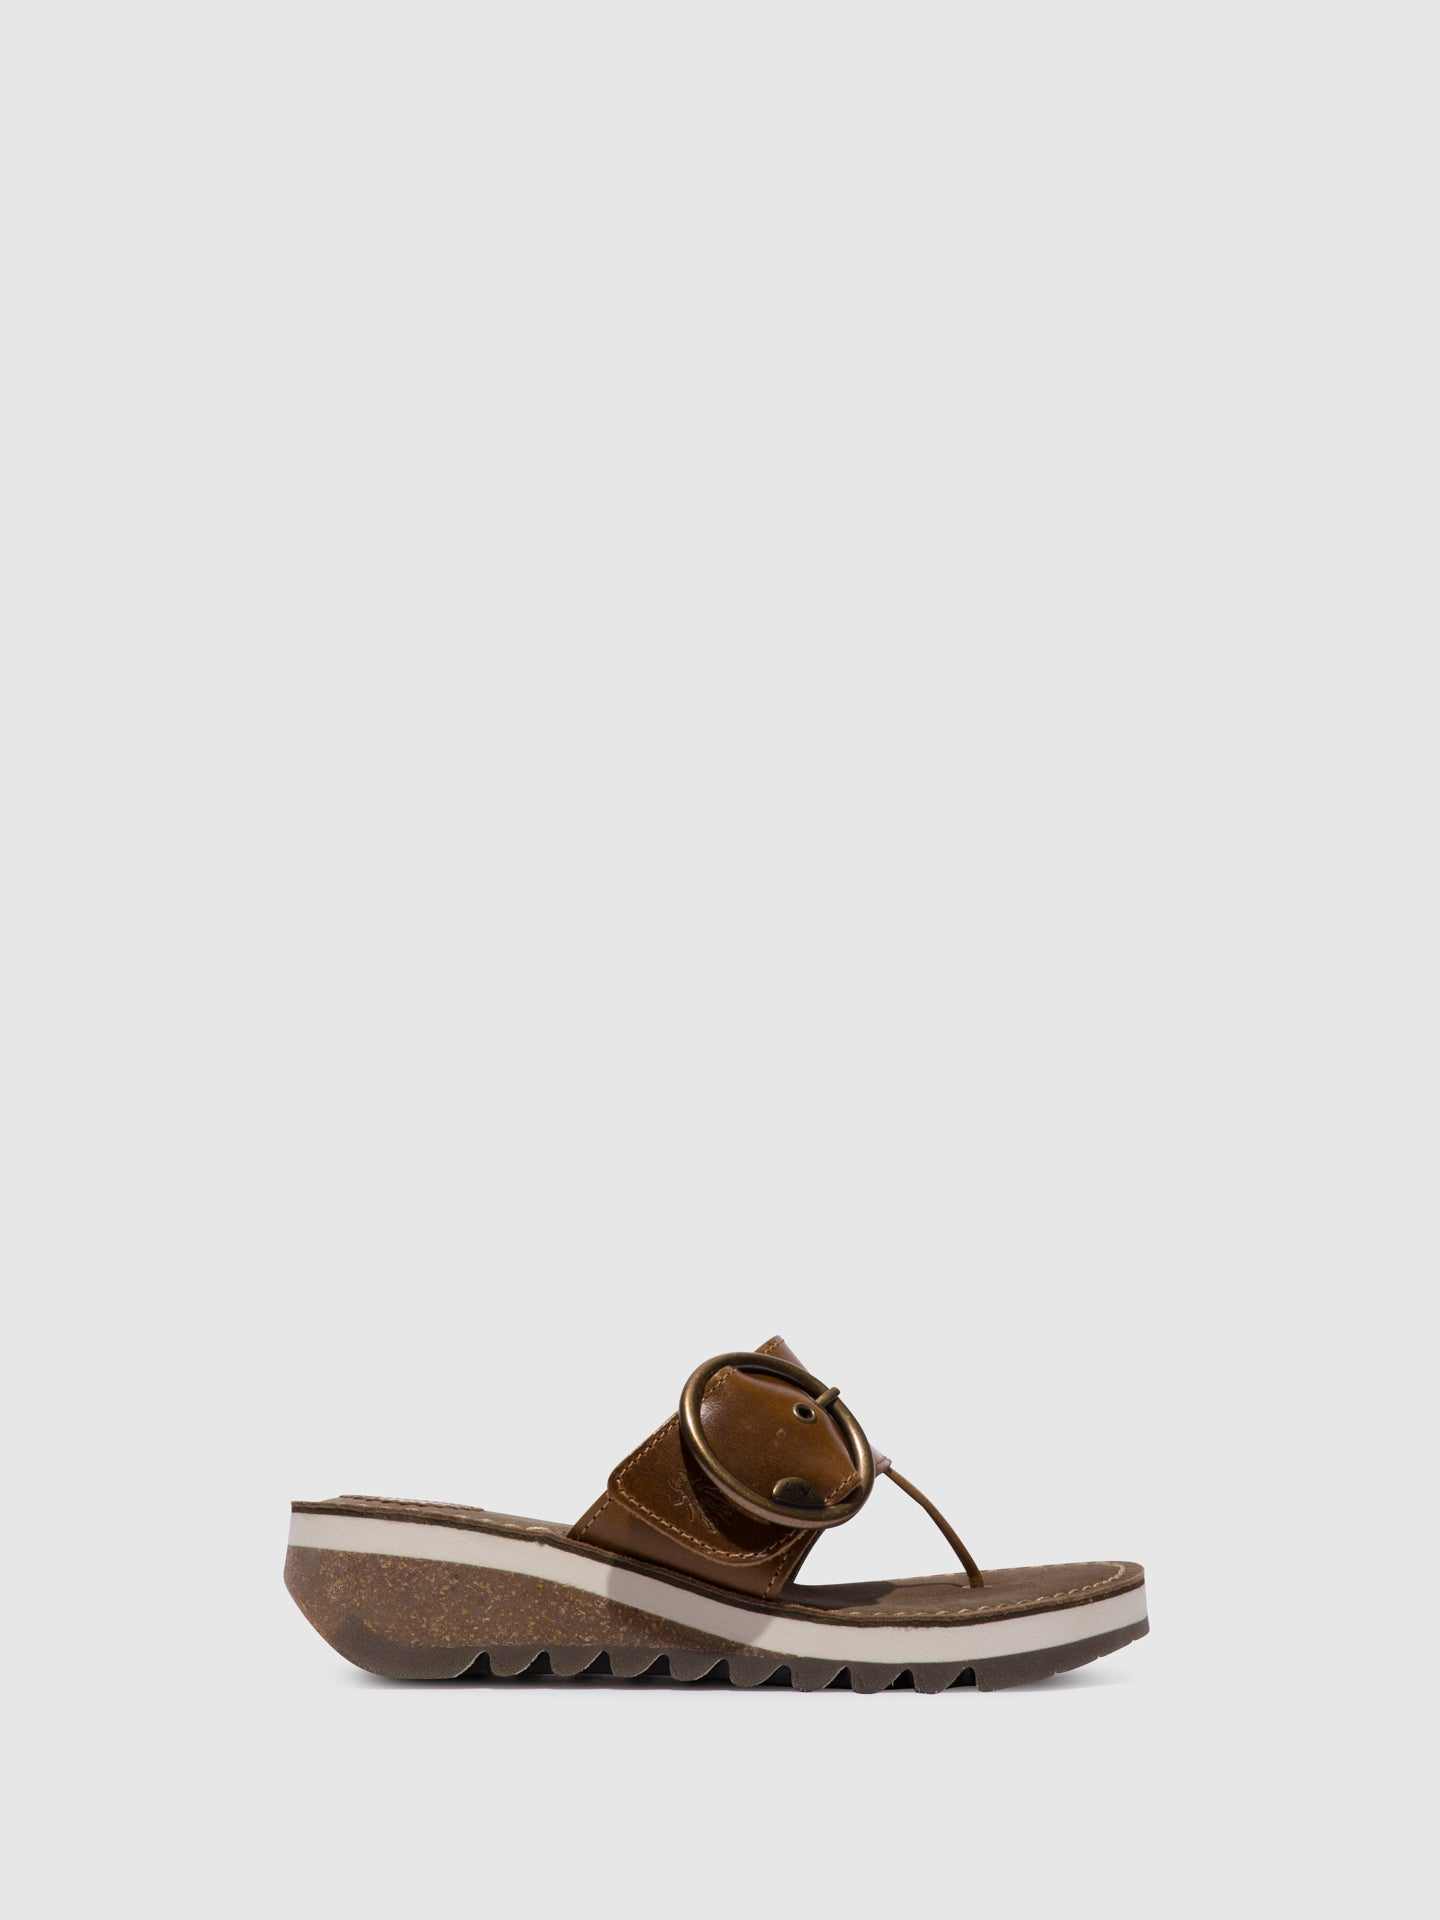 Fly London Camel Open Toe Sandals